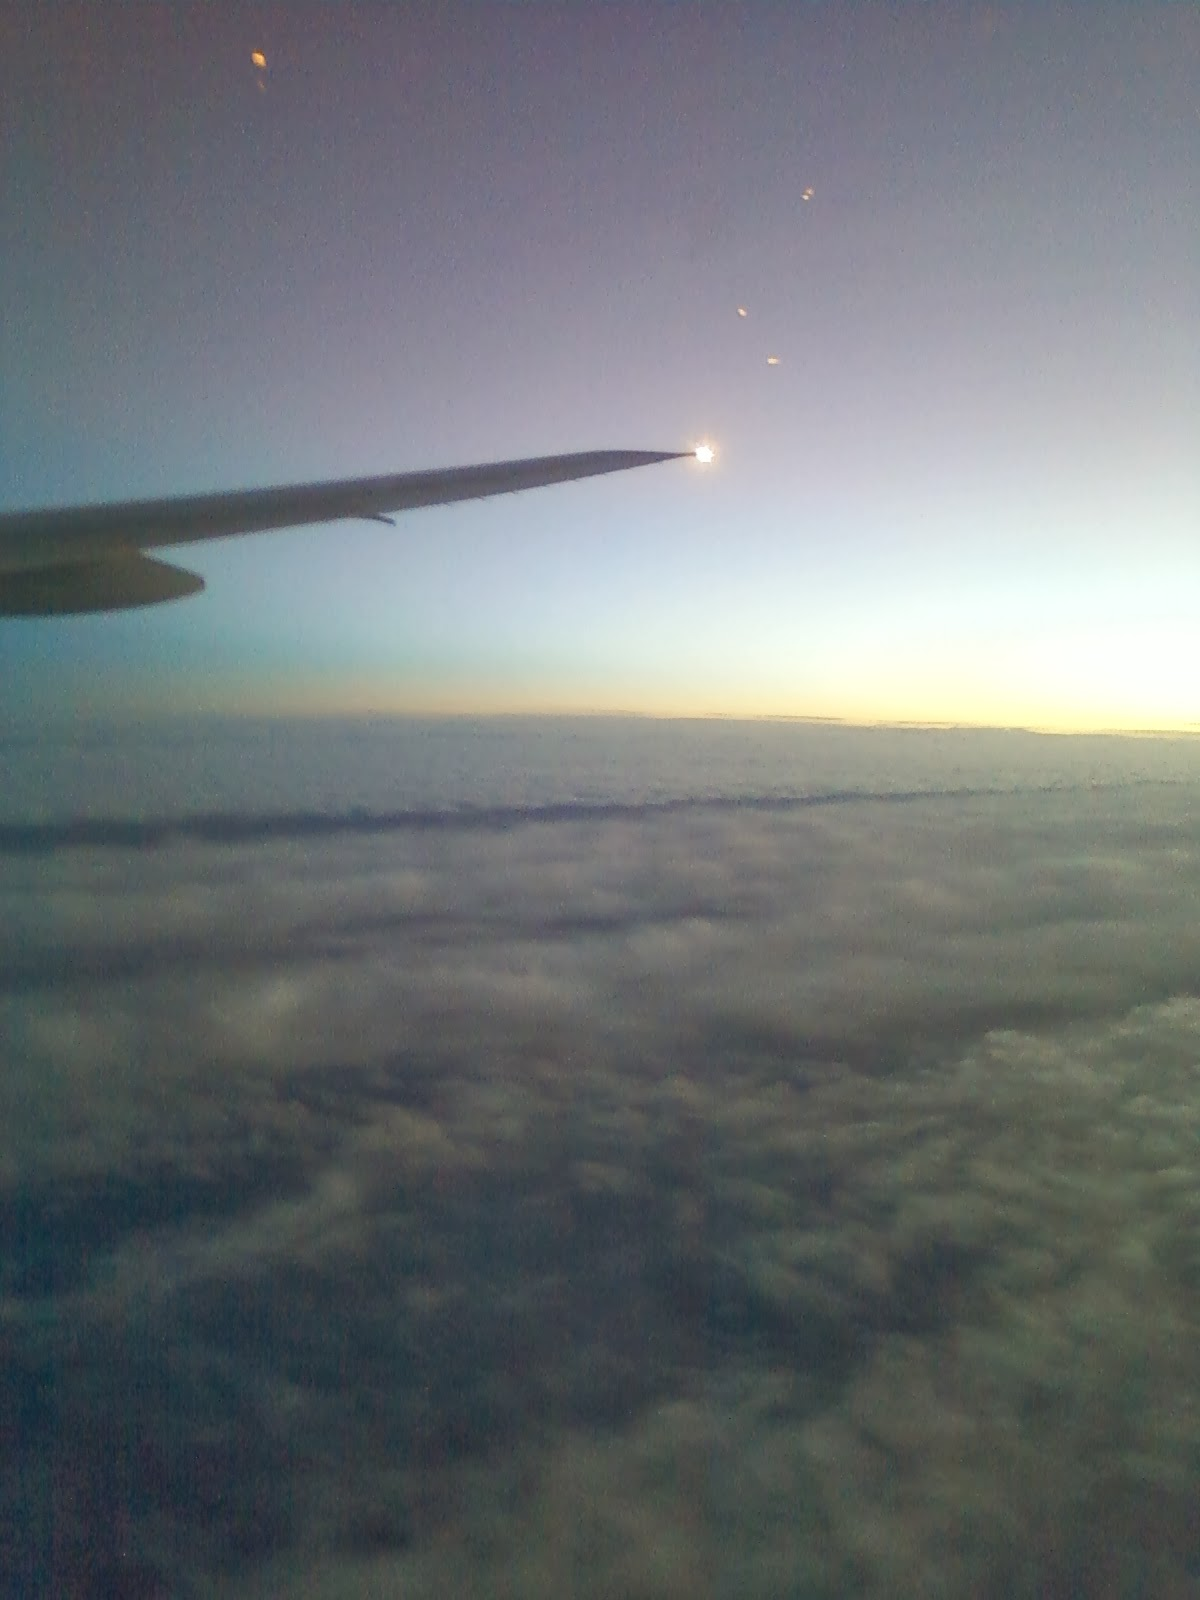 Sunset over the Atlantic - I would end up flying to the UK knowing